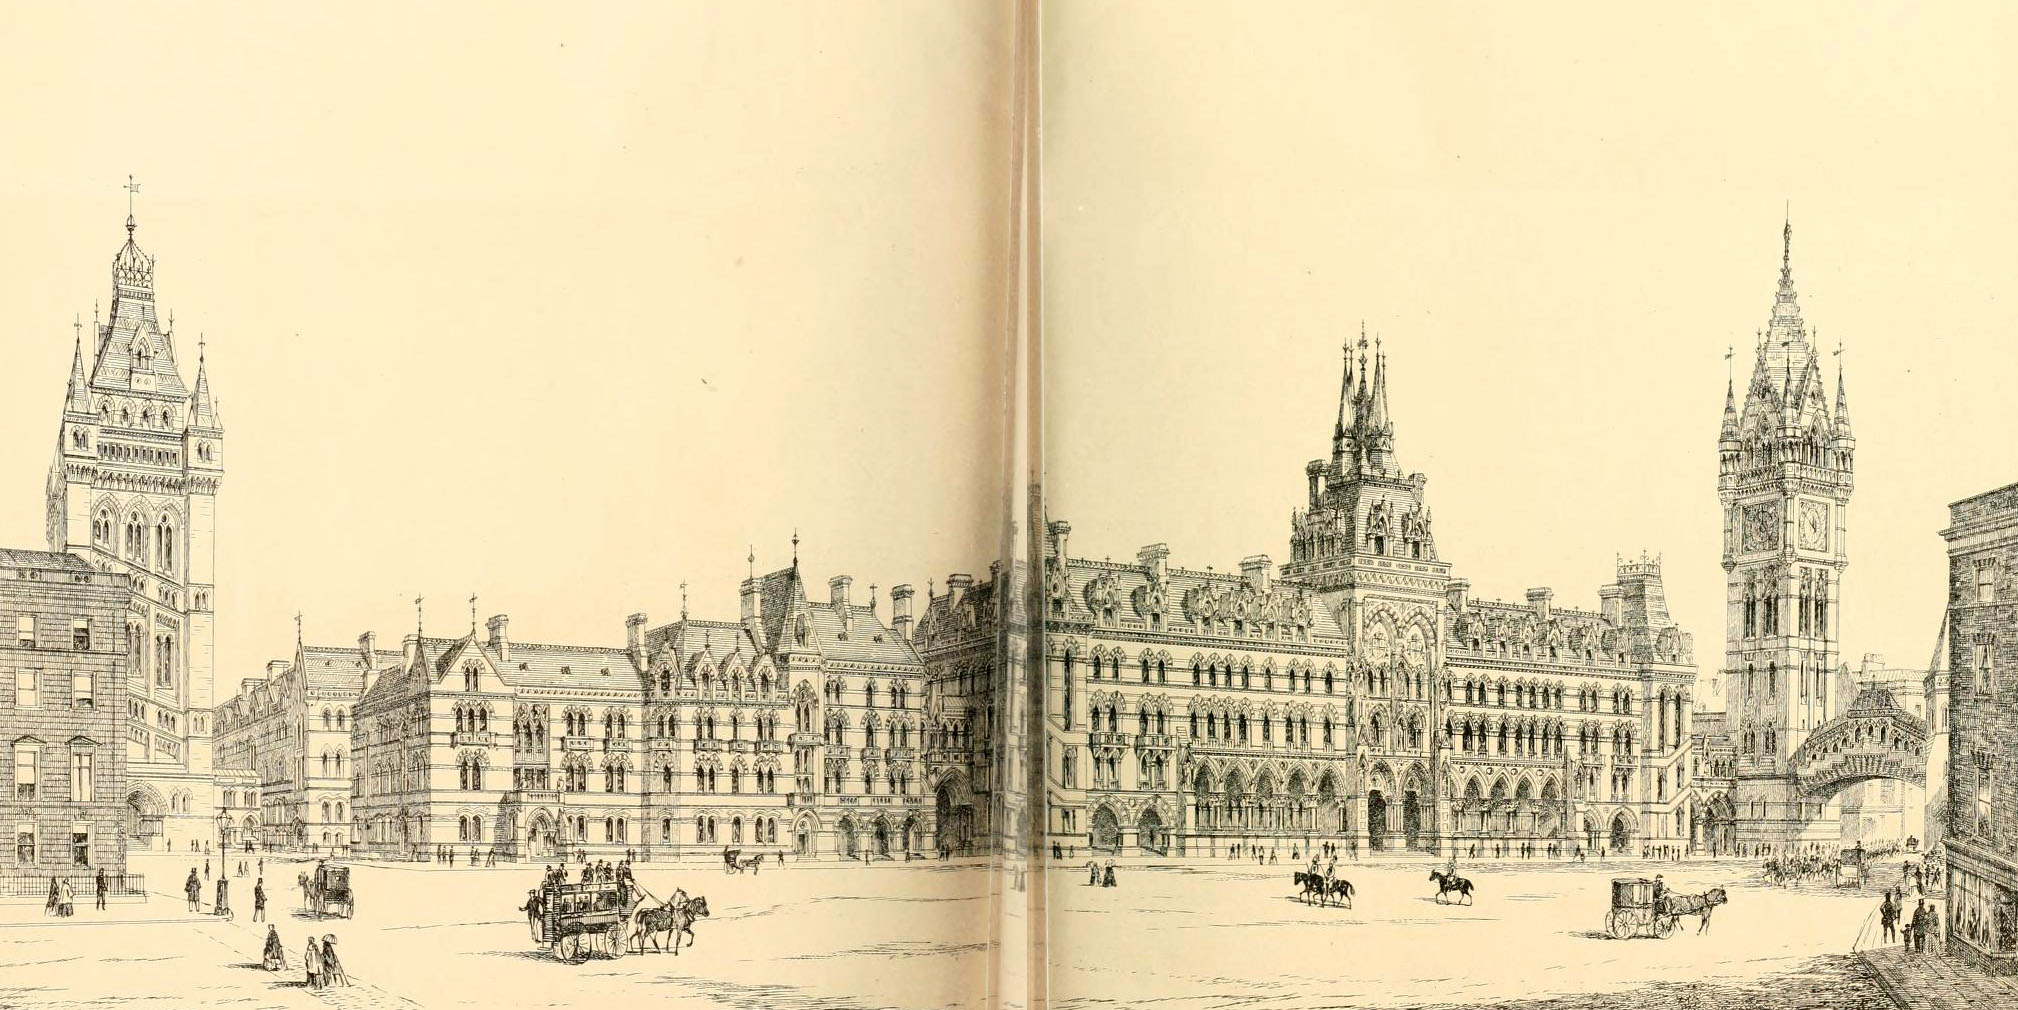 1867 &#8211; T.N. Deane&#8217;s Design for Royal Courts of Justice, London